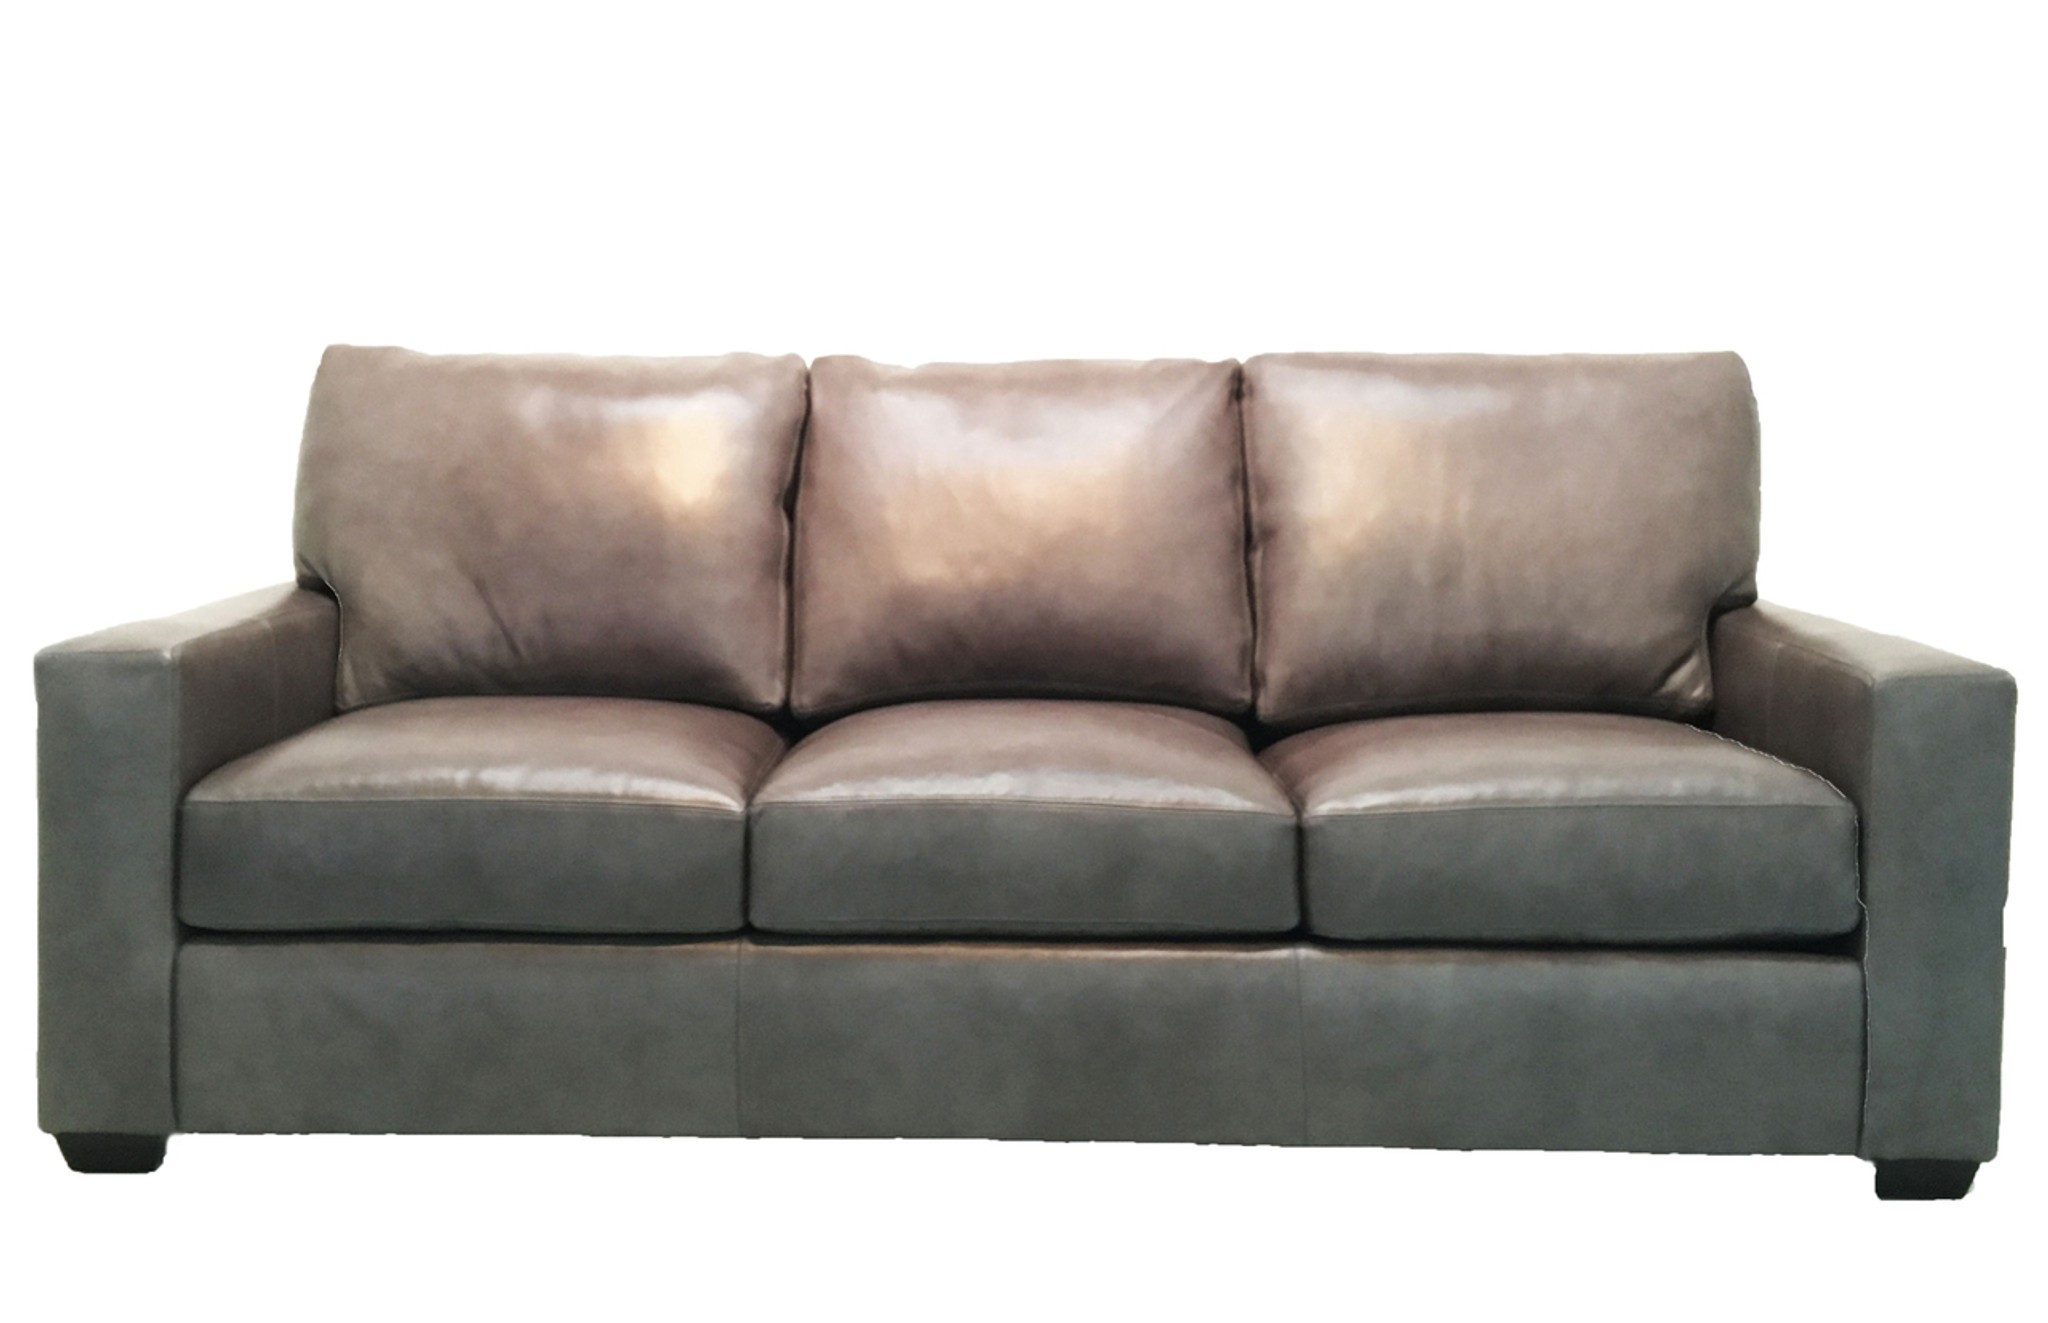 Designer Leather Sofas For Sale Designer Choice Program Leather Sofa American Heritage